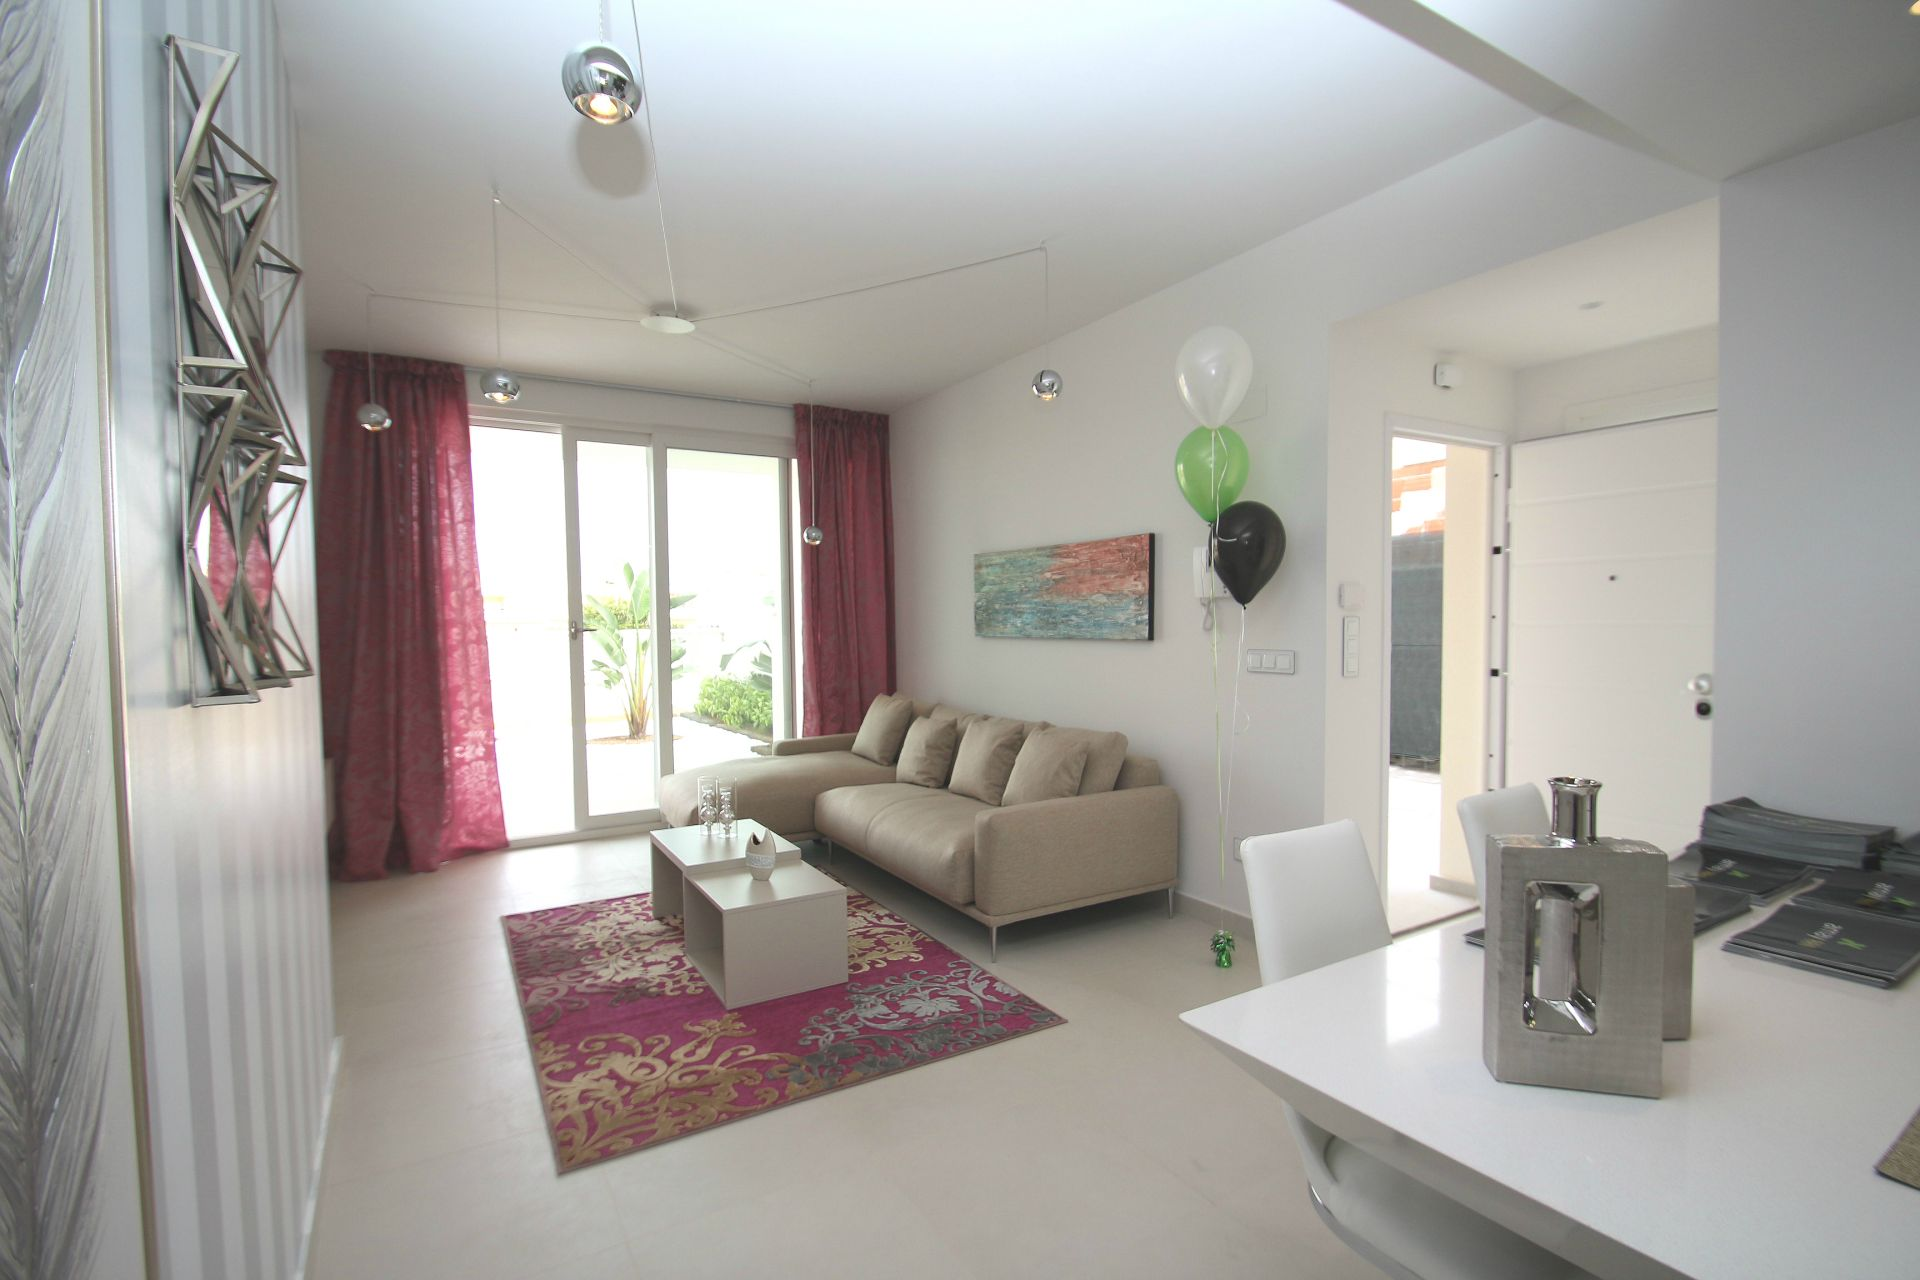 3 bedroom modern bungalows with garden or solarium in Torrevieja 16